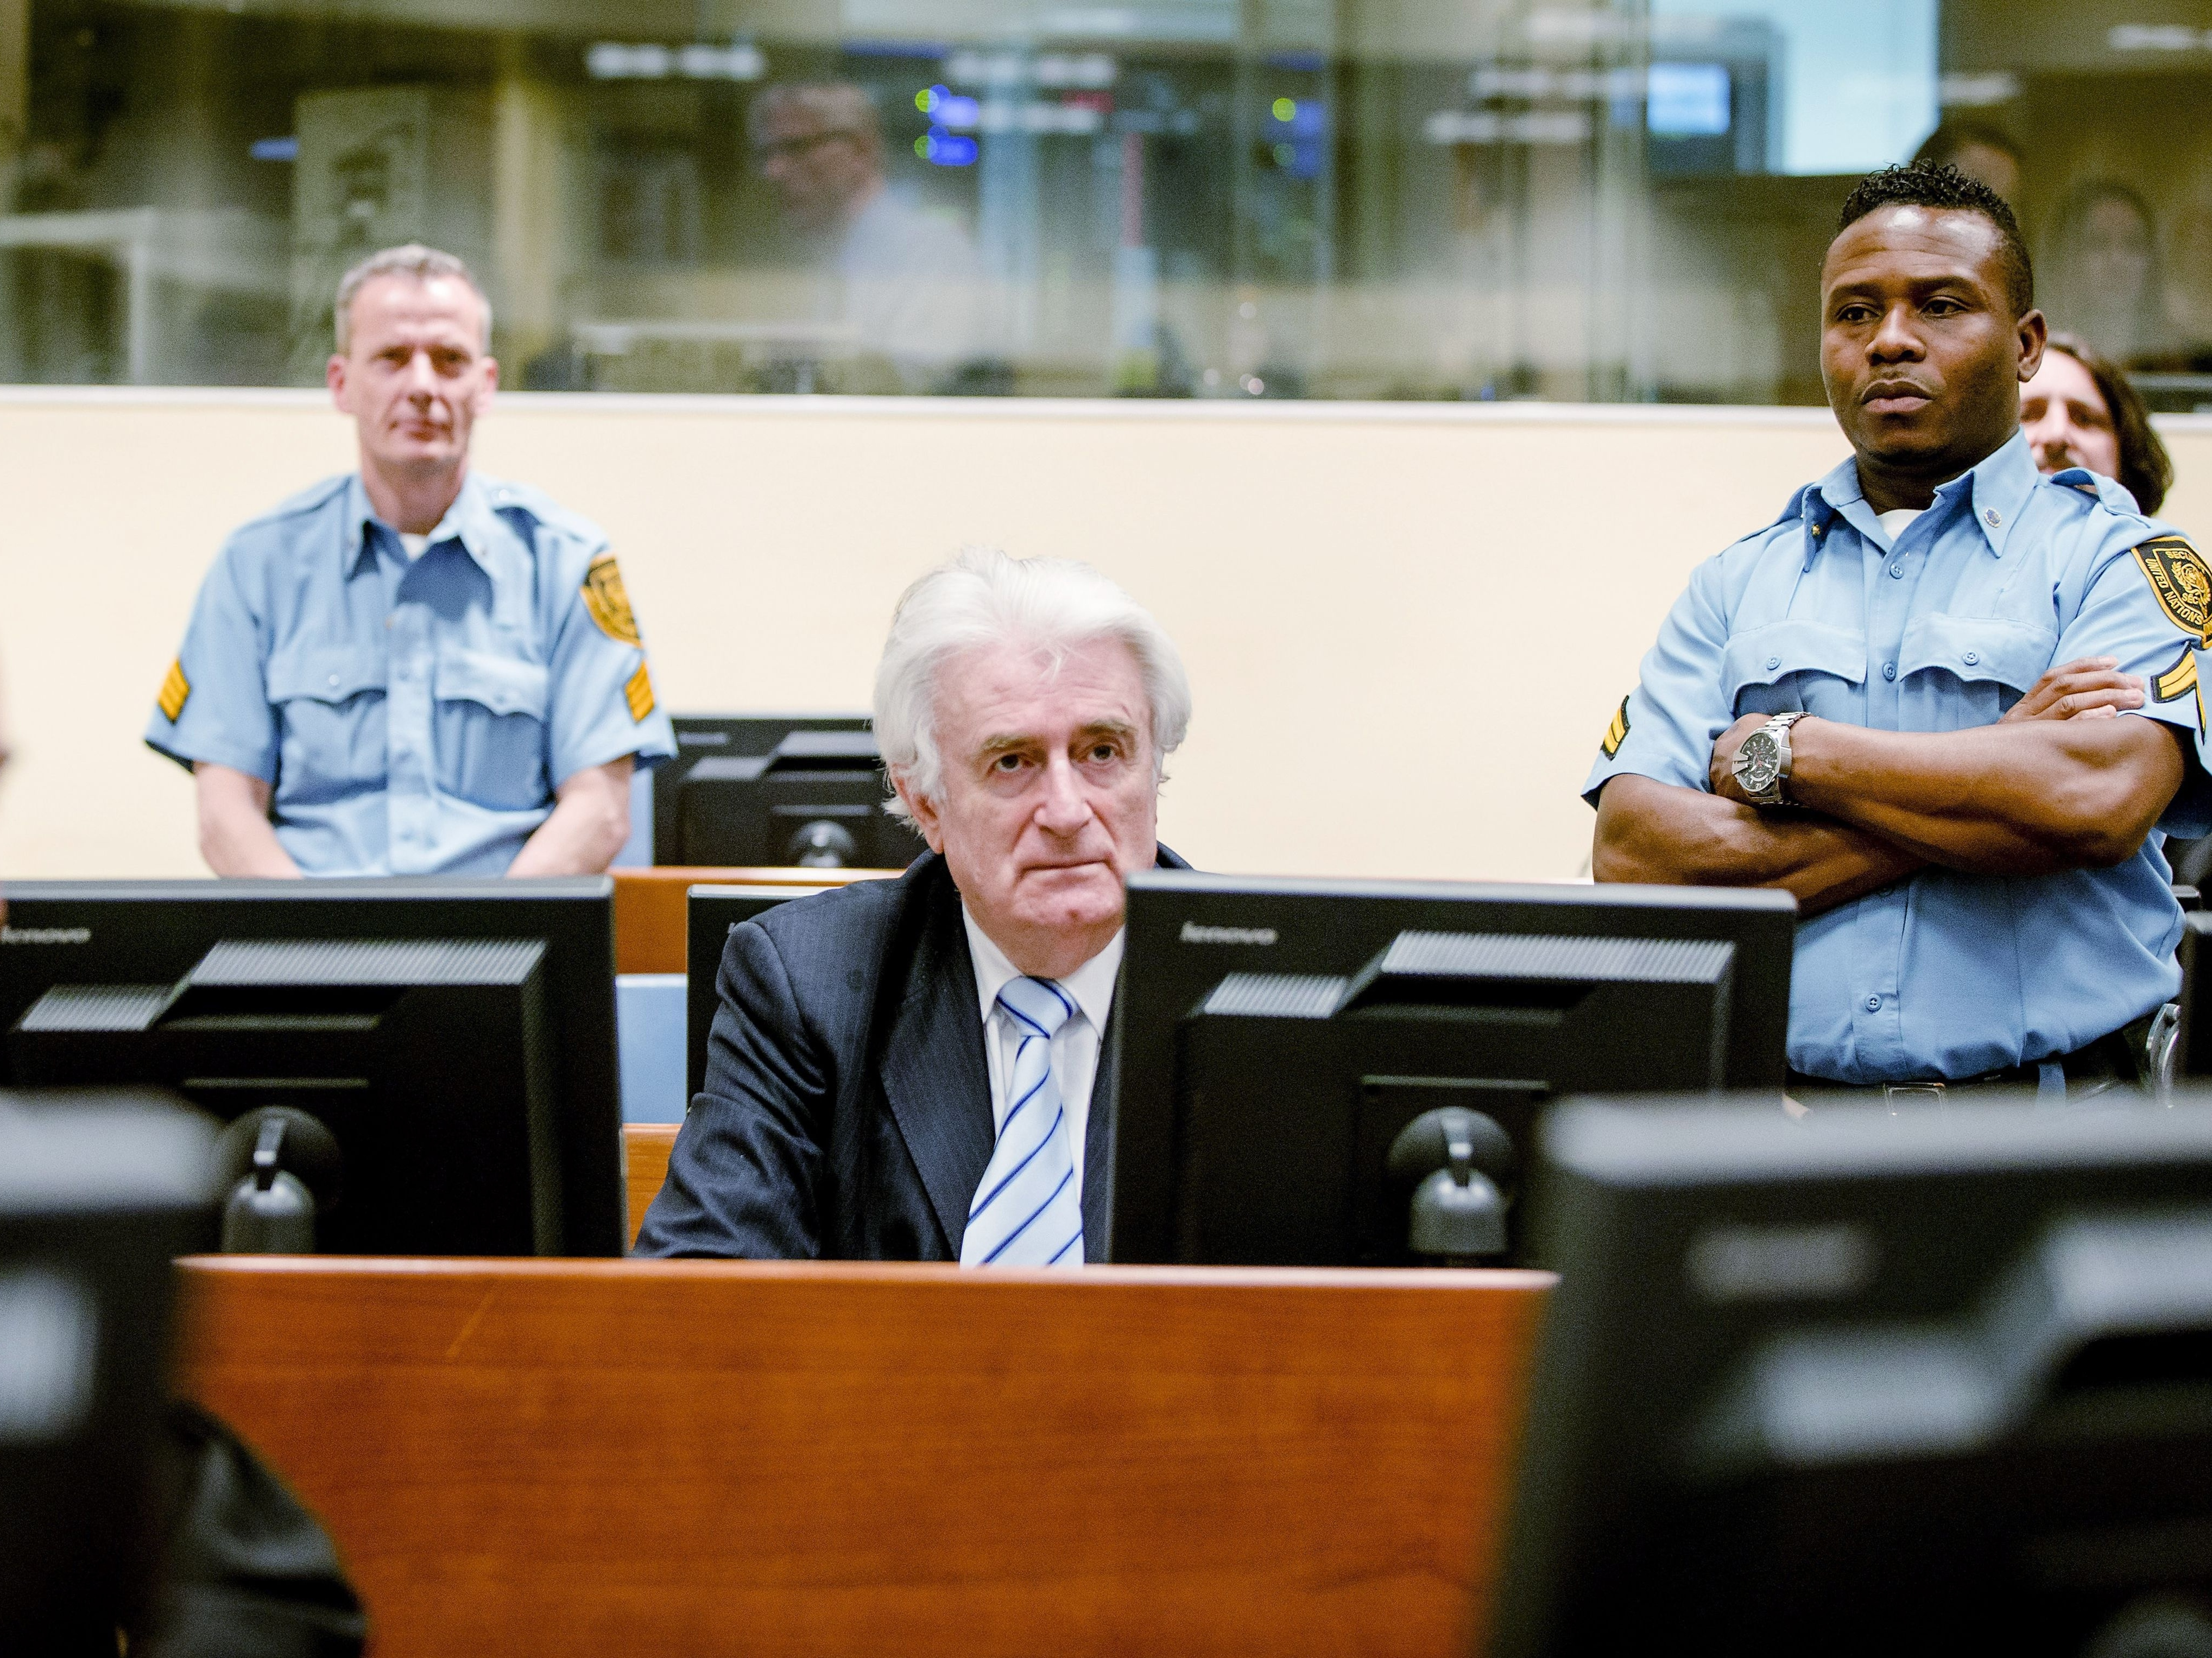 Two Decades After The War, A Genocide Conviction For Radovan Karadzic